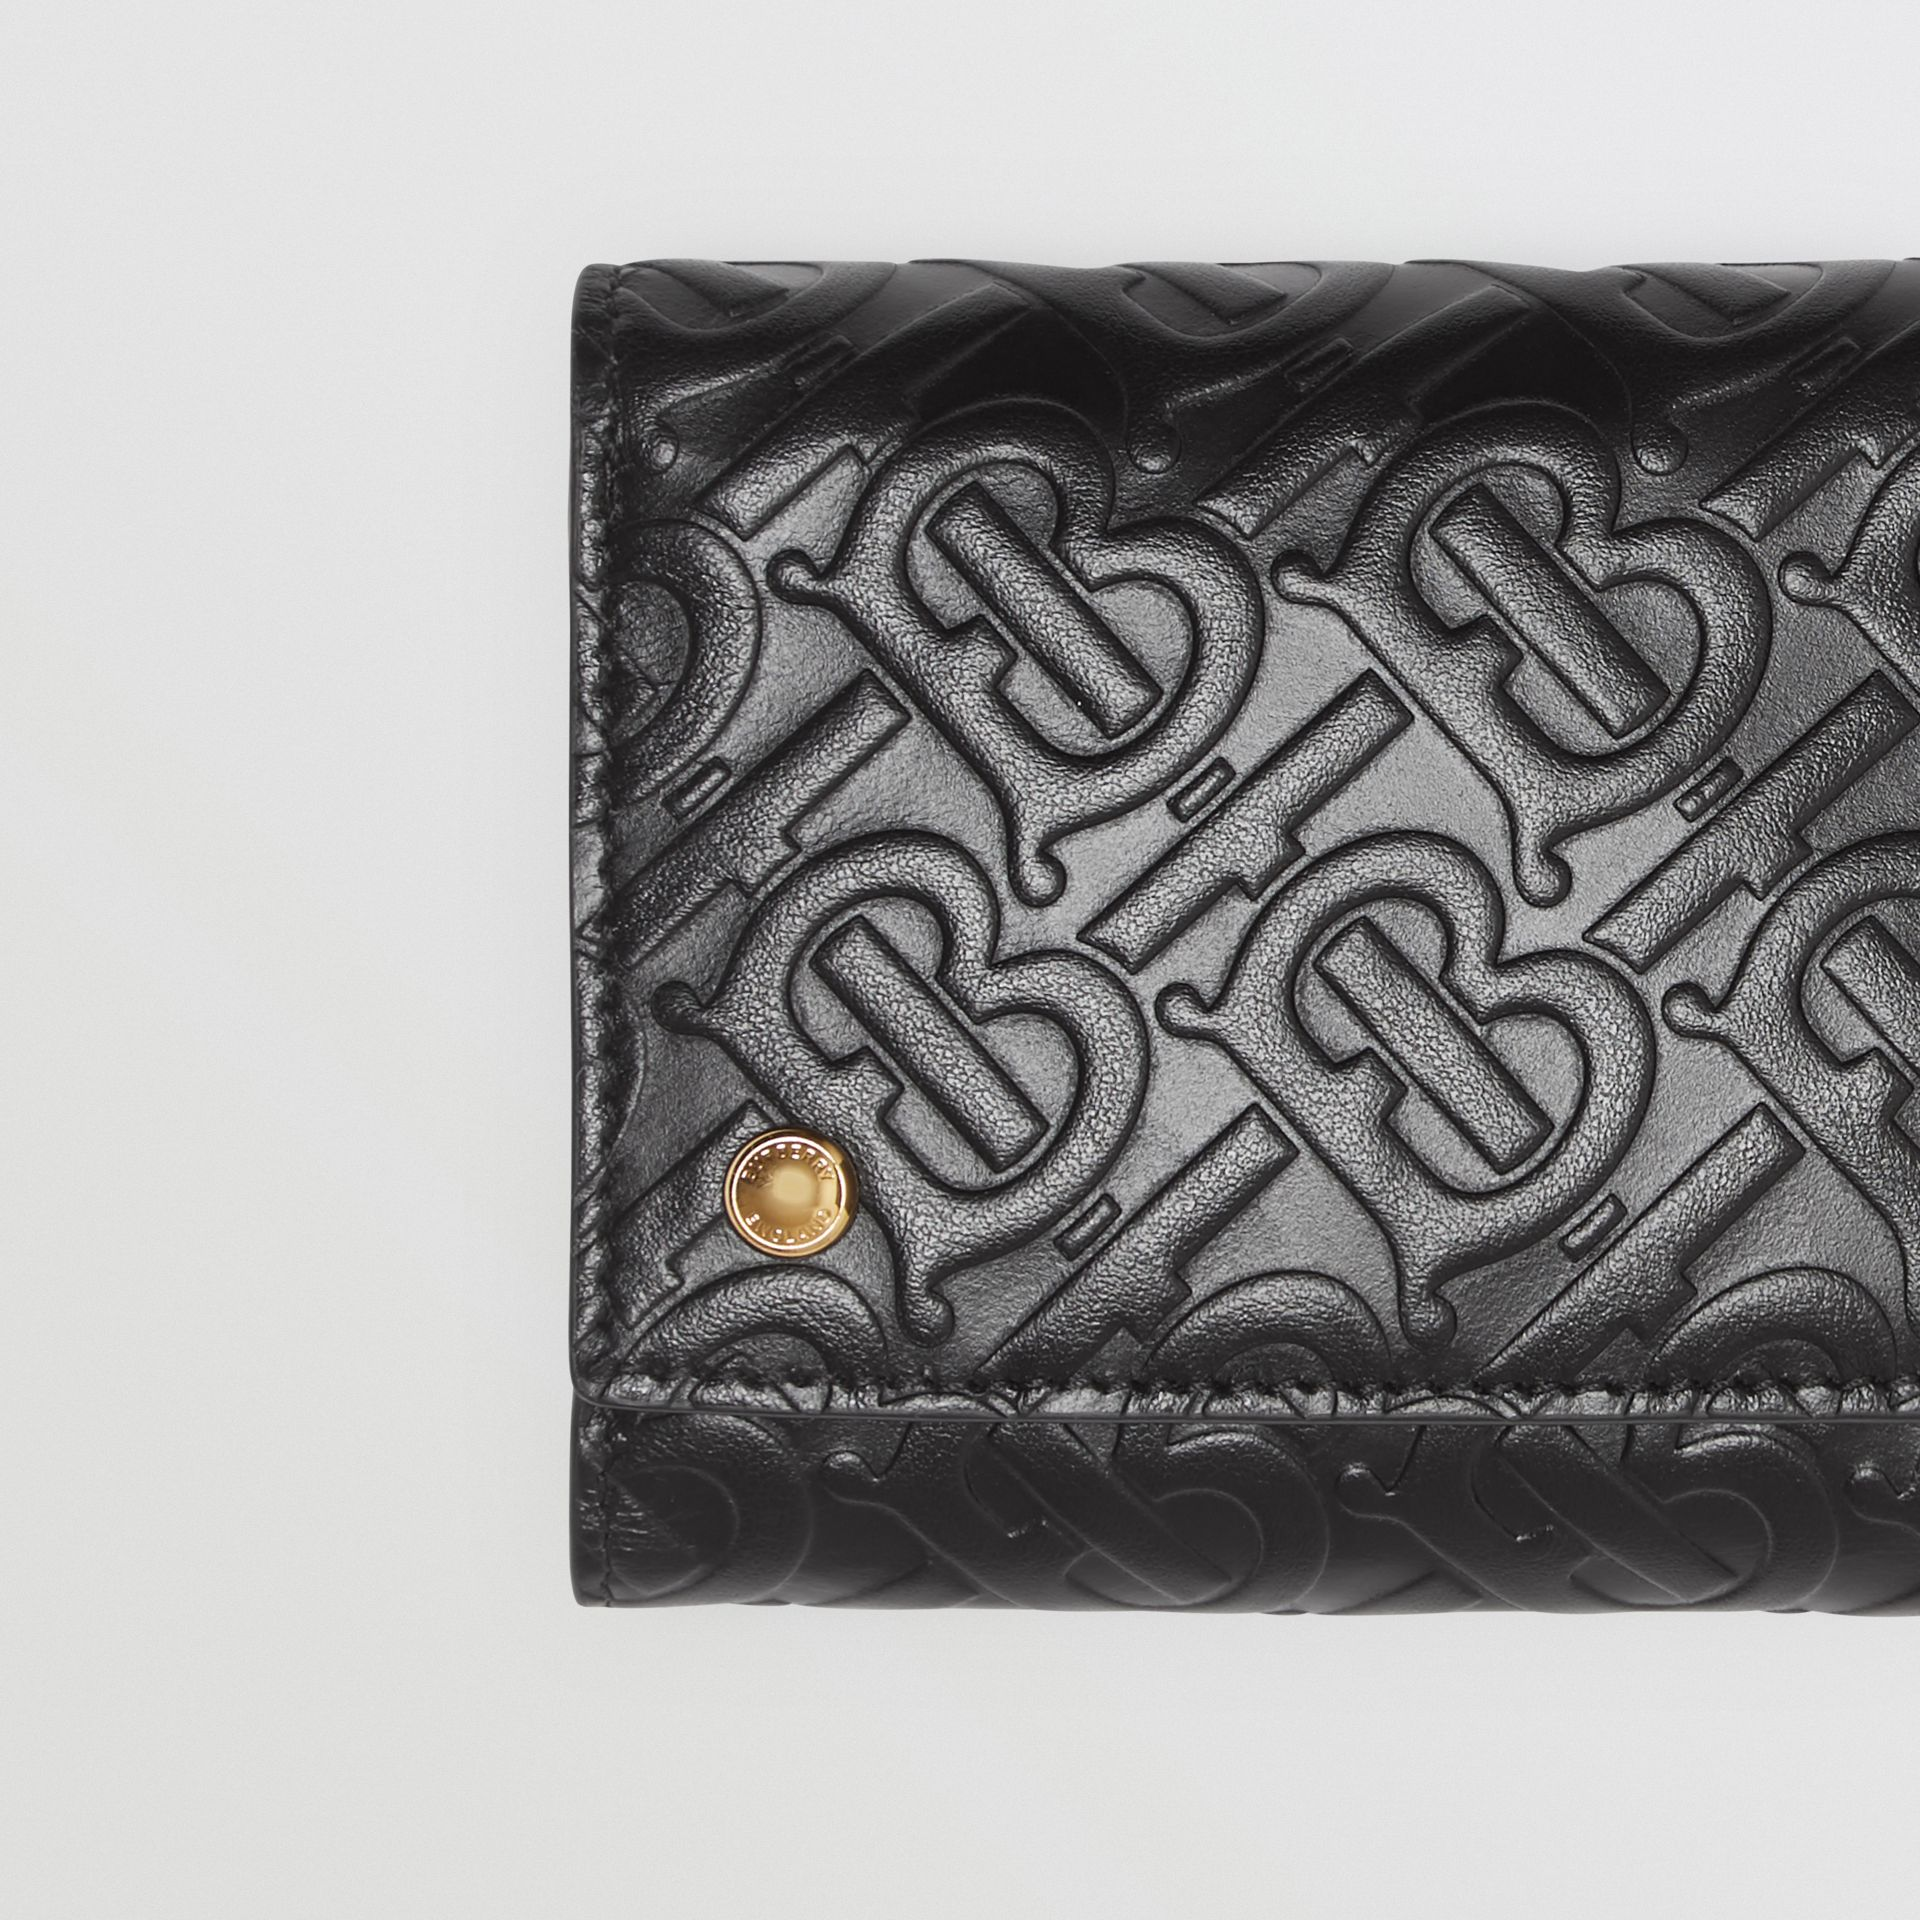 Small Monogram Leather Folding Wallet in Black - Women | Burberry - gallery image 1